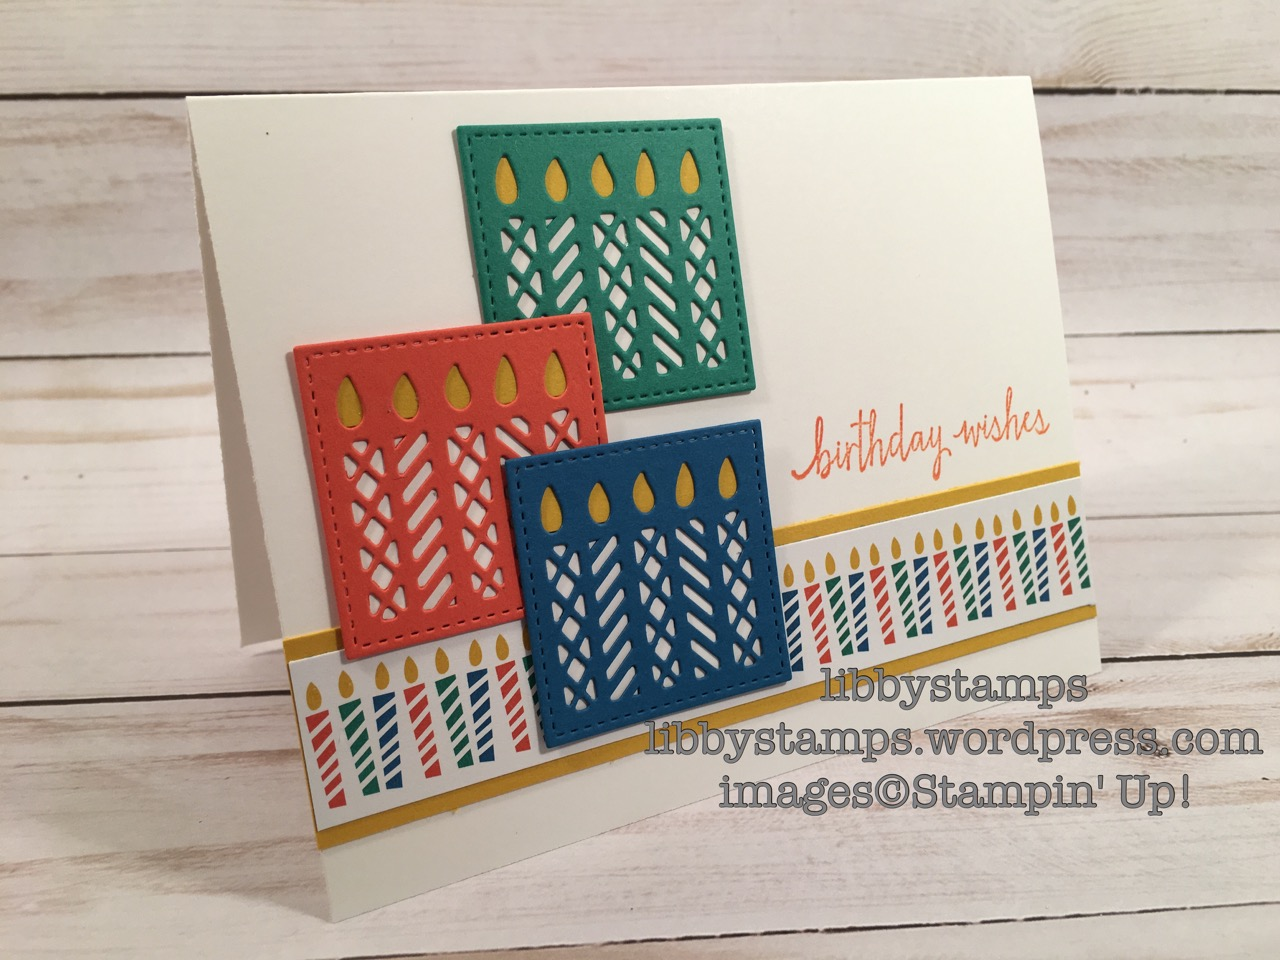 libbystamps, stampin up, Build a Birthday, Window Box Thinlits, Party Animal DSP, Occasions Mini 2017